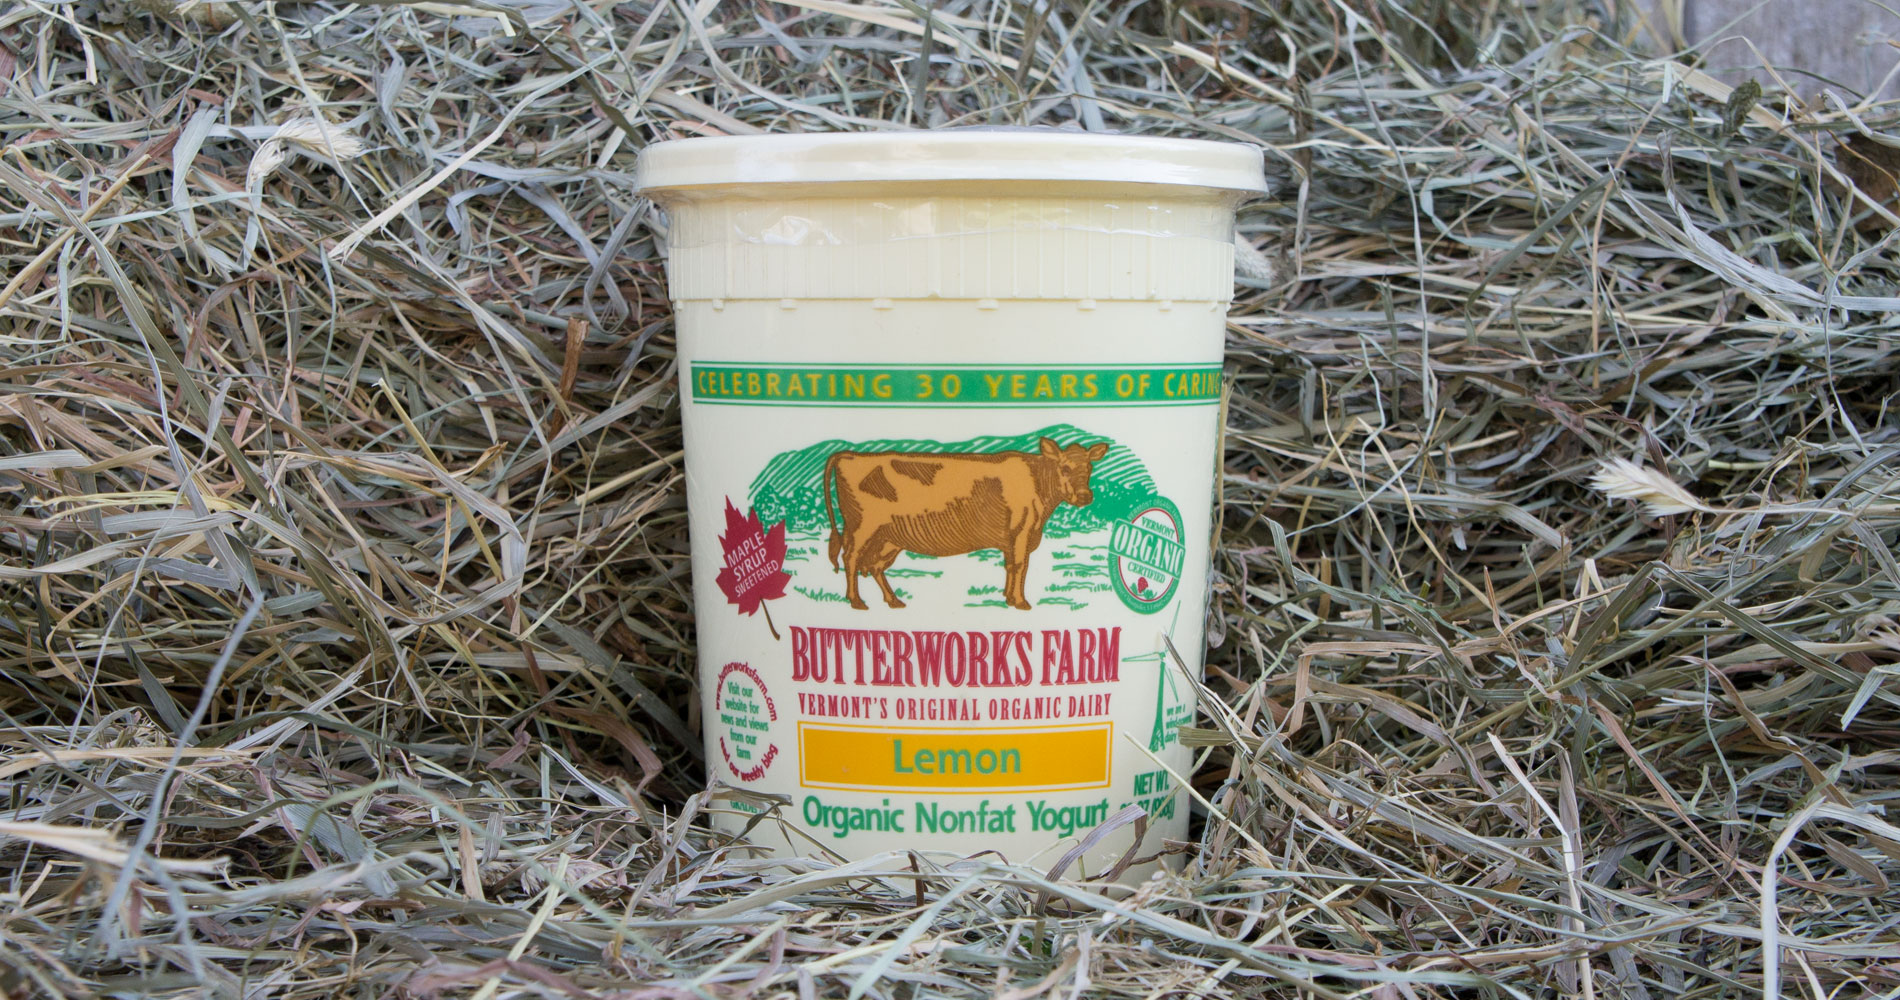 Butterworks Farm Organic Lemon Yogurt